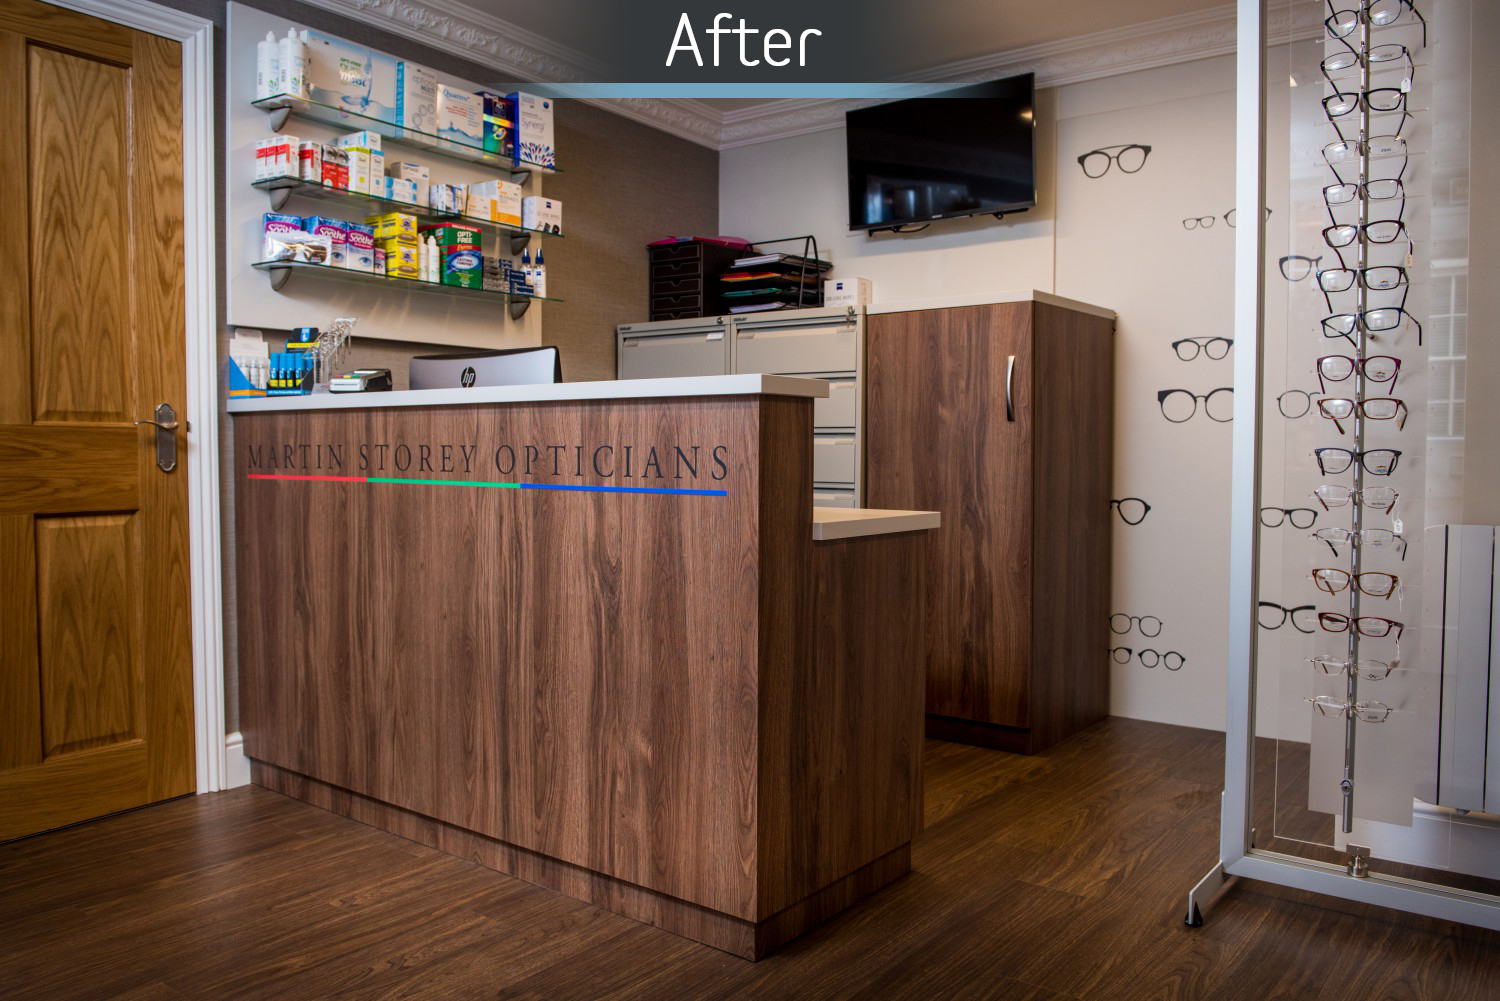 Martin Storey opticians reception area after commercial Interior design and refurbishment by Mewscraft